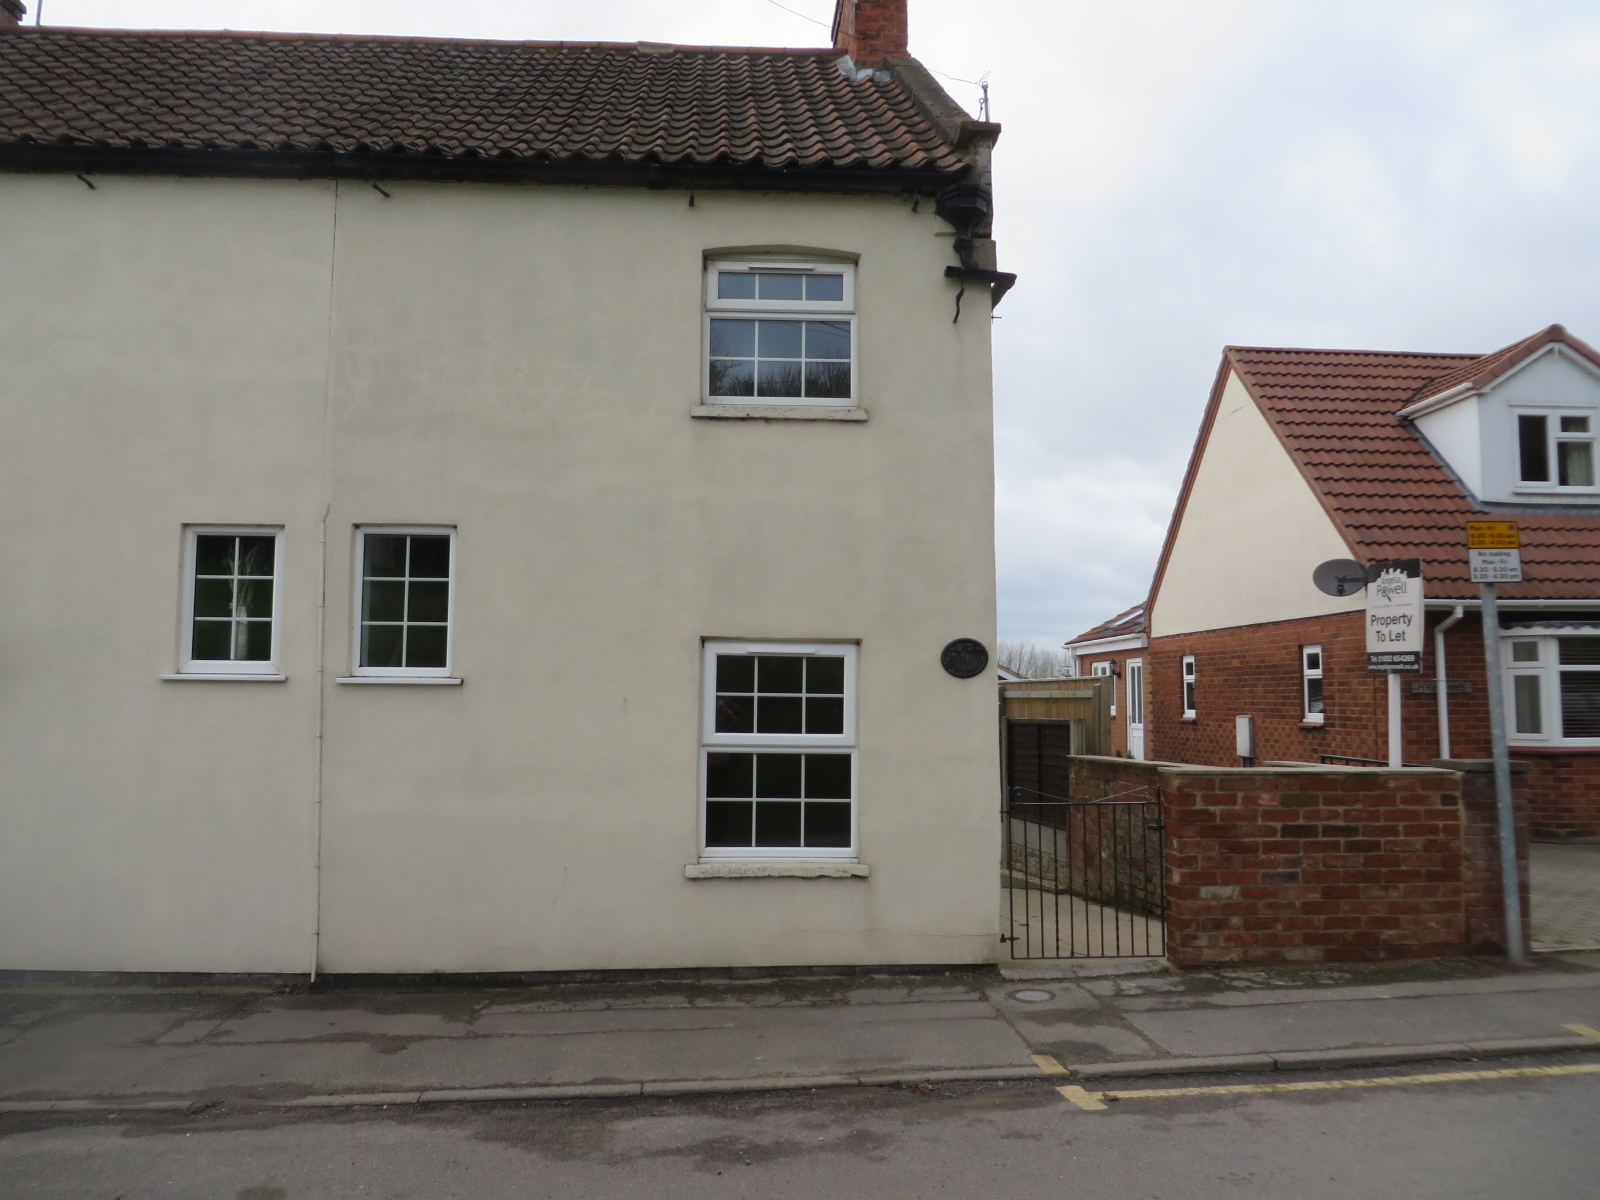 Horkstow Road, South Ferriby